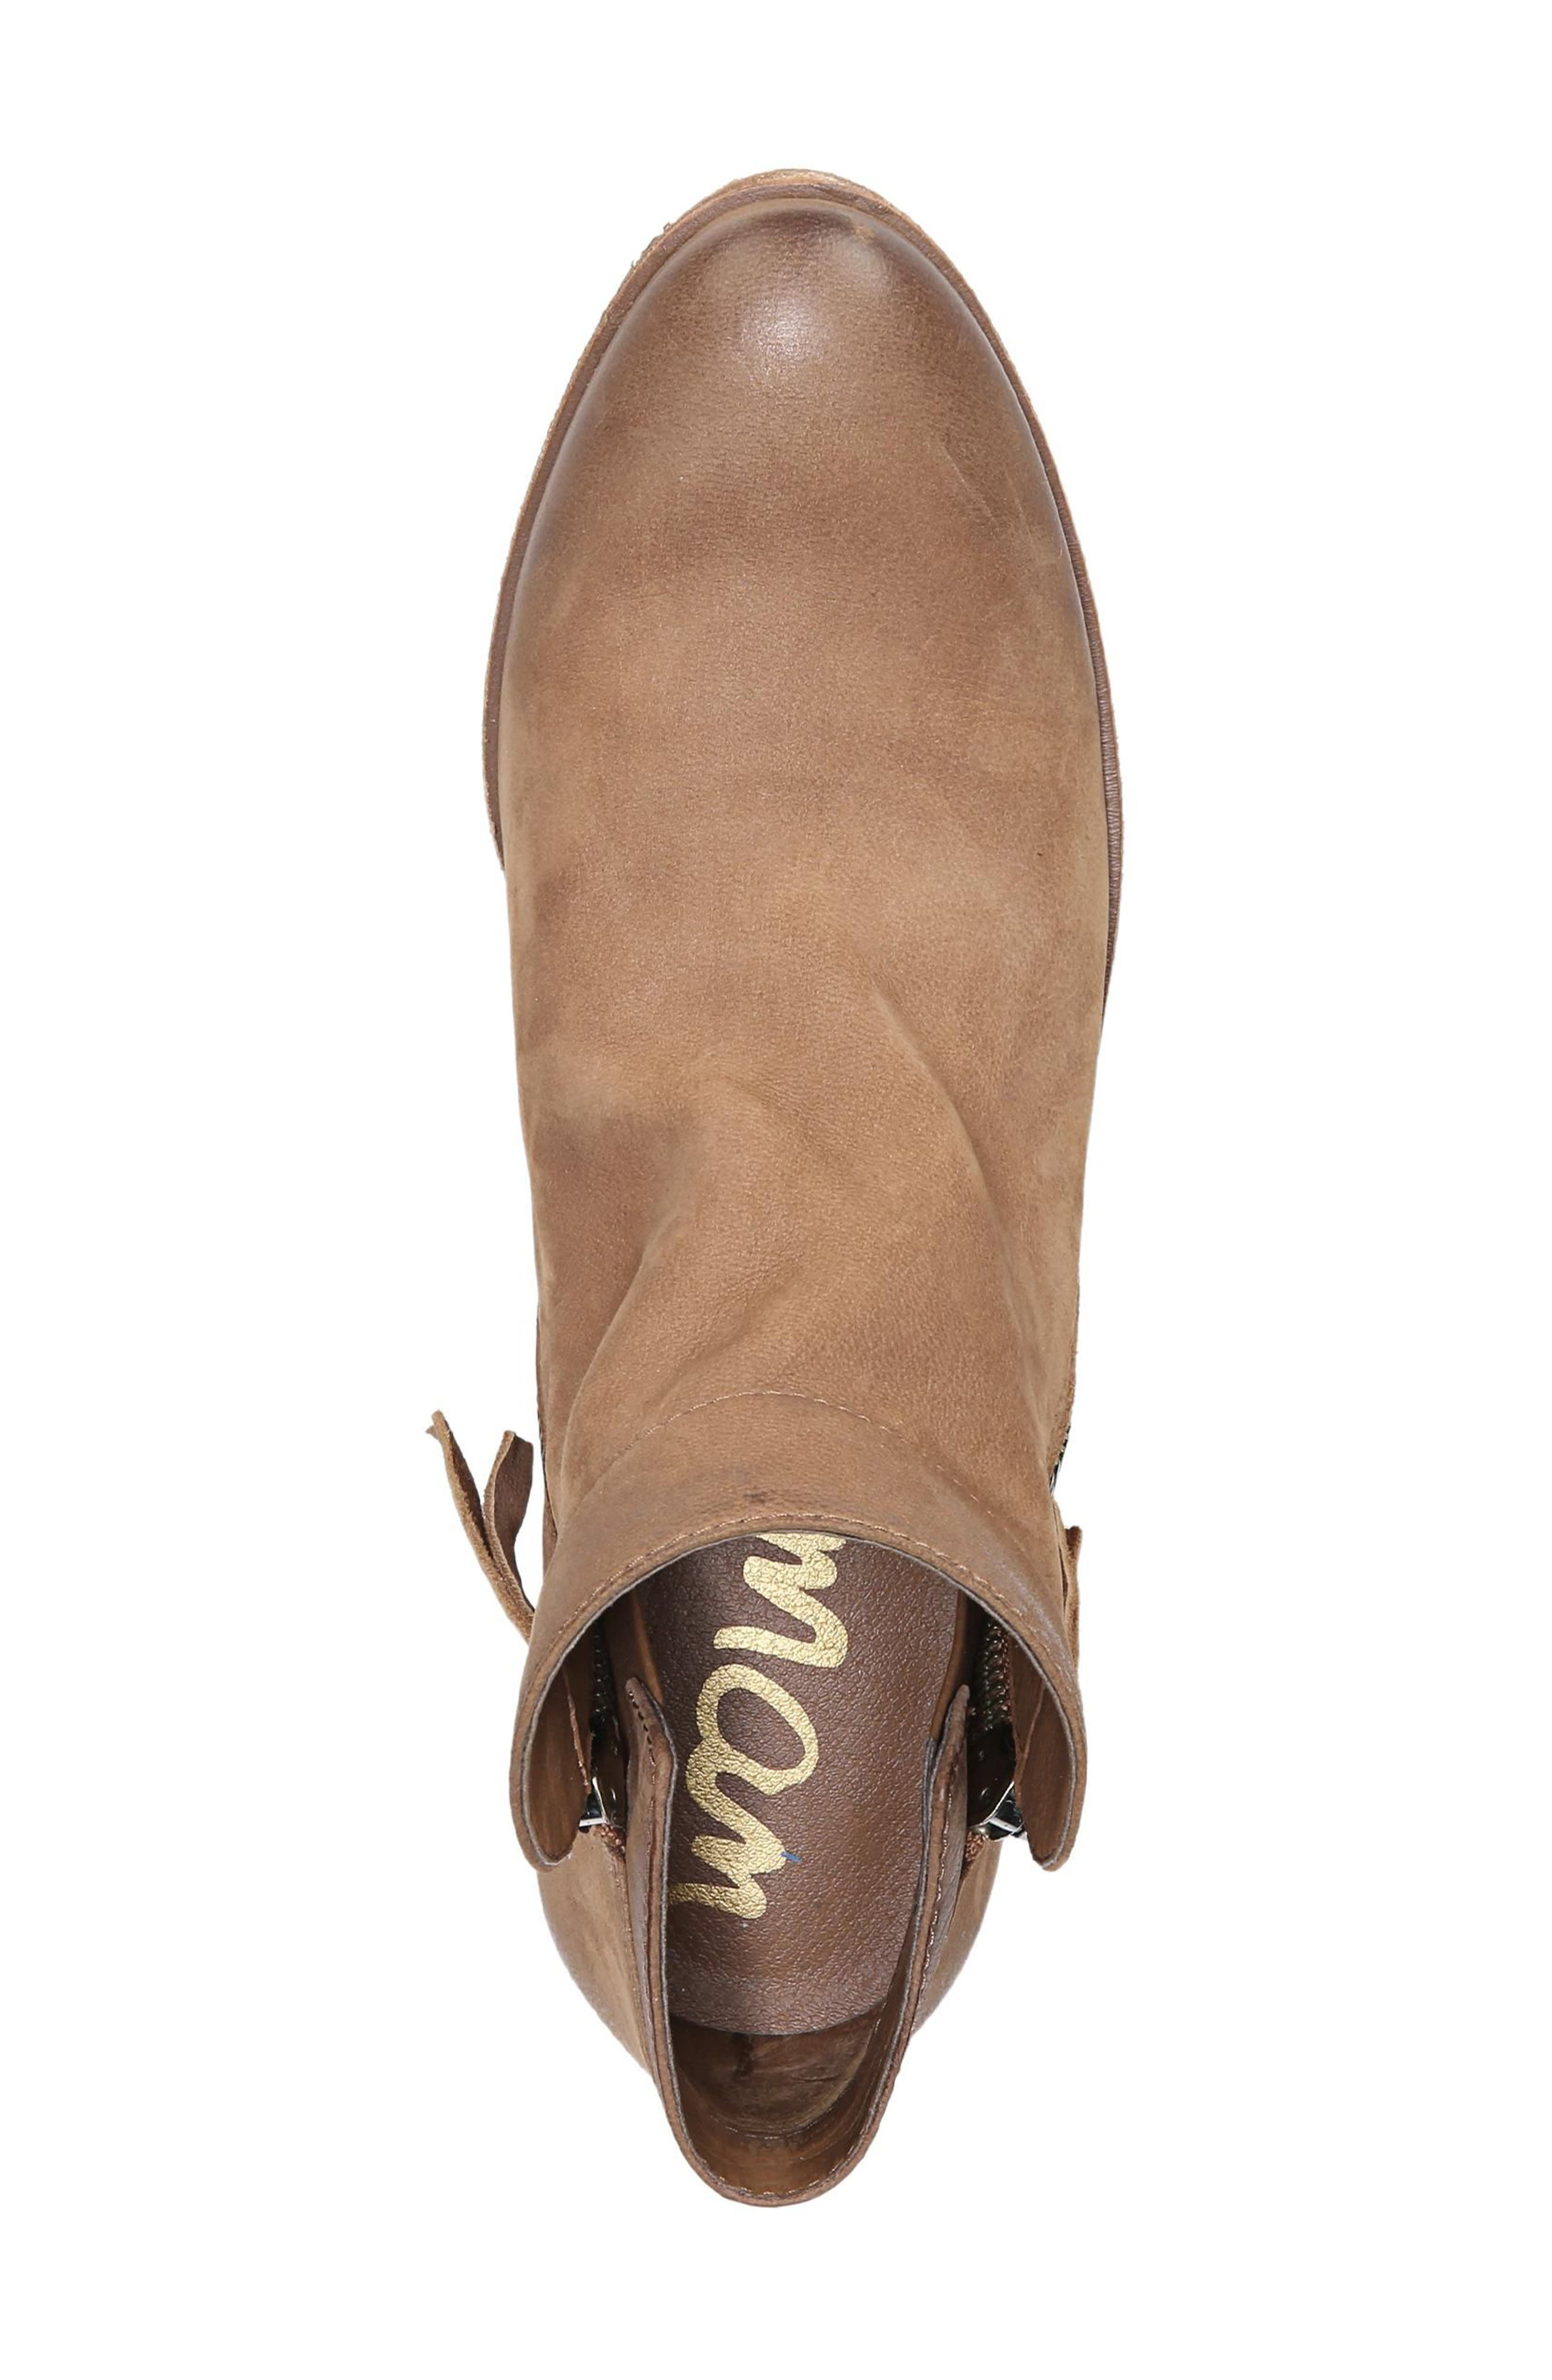 Packer Bootie,                             Alternate thumbnail 5, color,                             DEEP SADDLE LEATHER